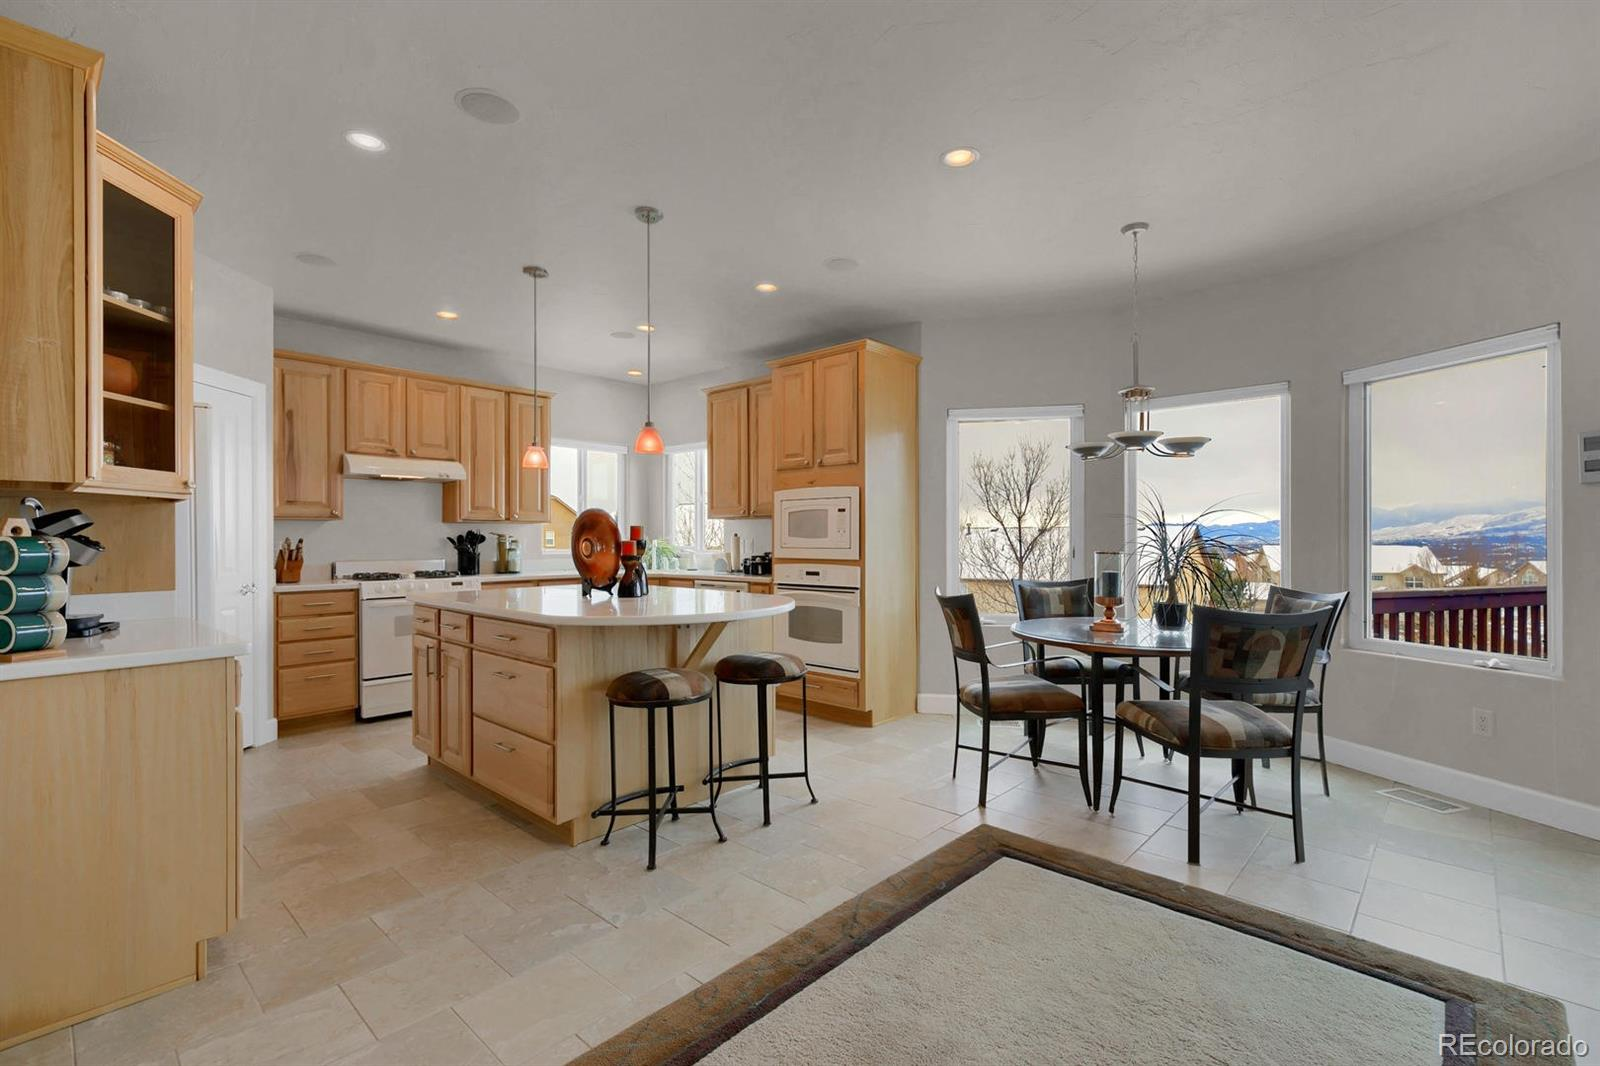 MLS# 5159811 - 13 - 207 Green Rock Place, Monument, CO 80132